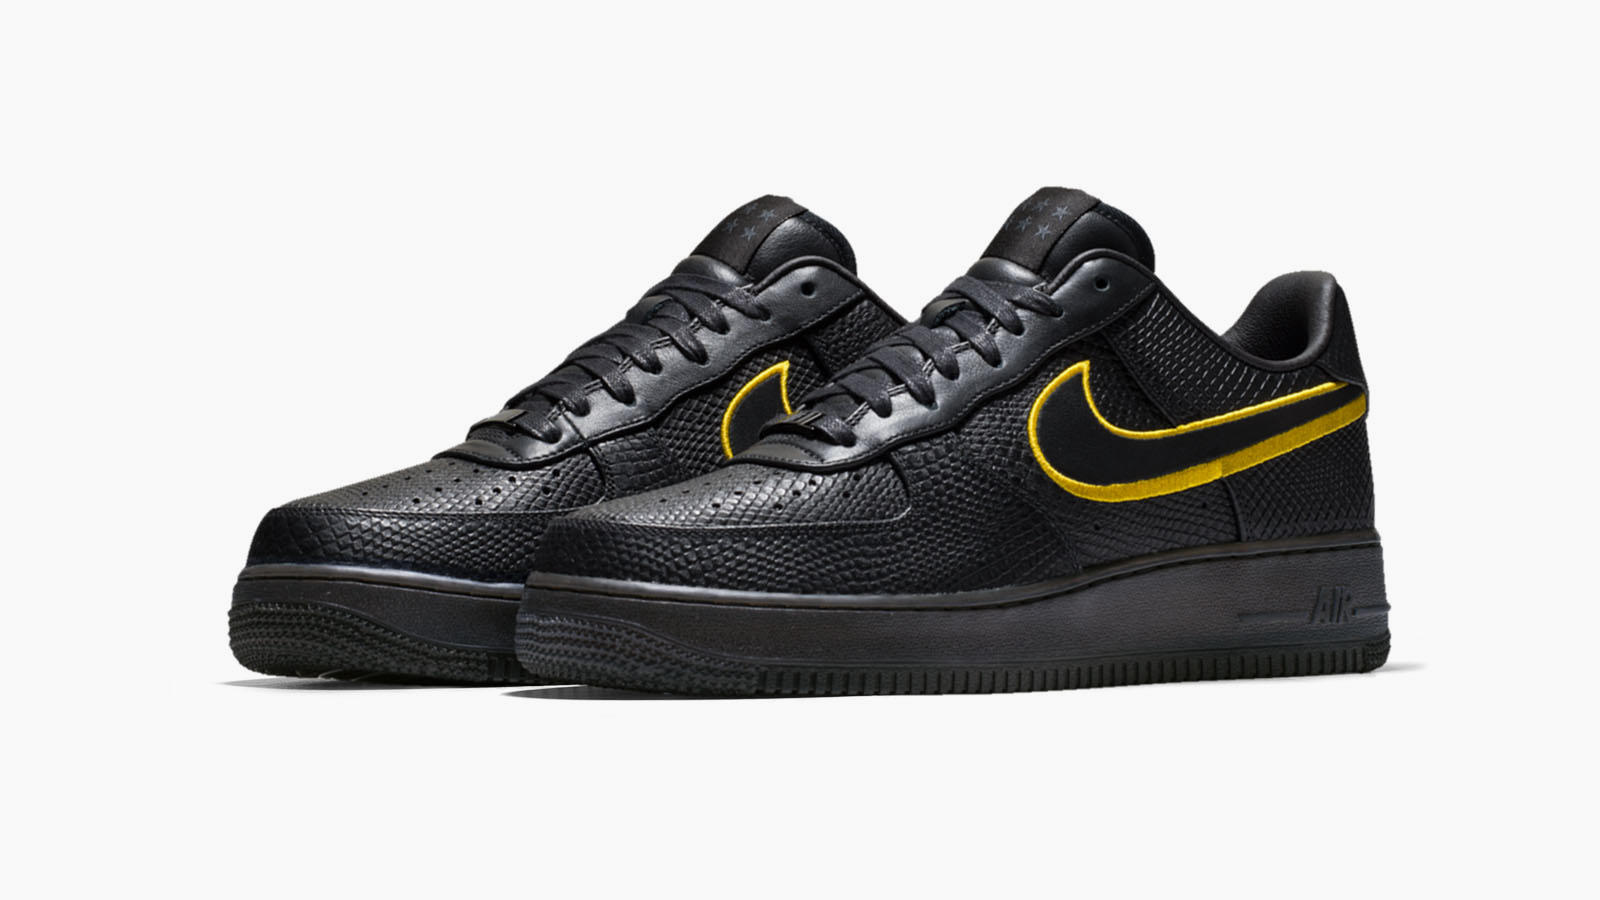 7cd6bdf747e Five Things to Know About the Commemorative Kobe Bryant Black Mamba Air  Force 1 14